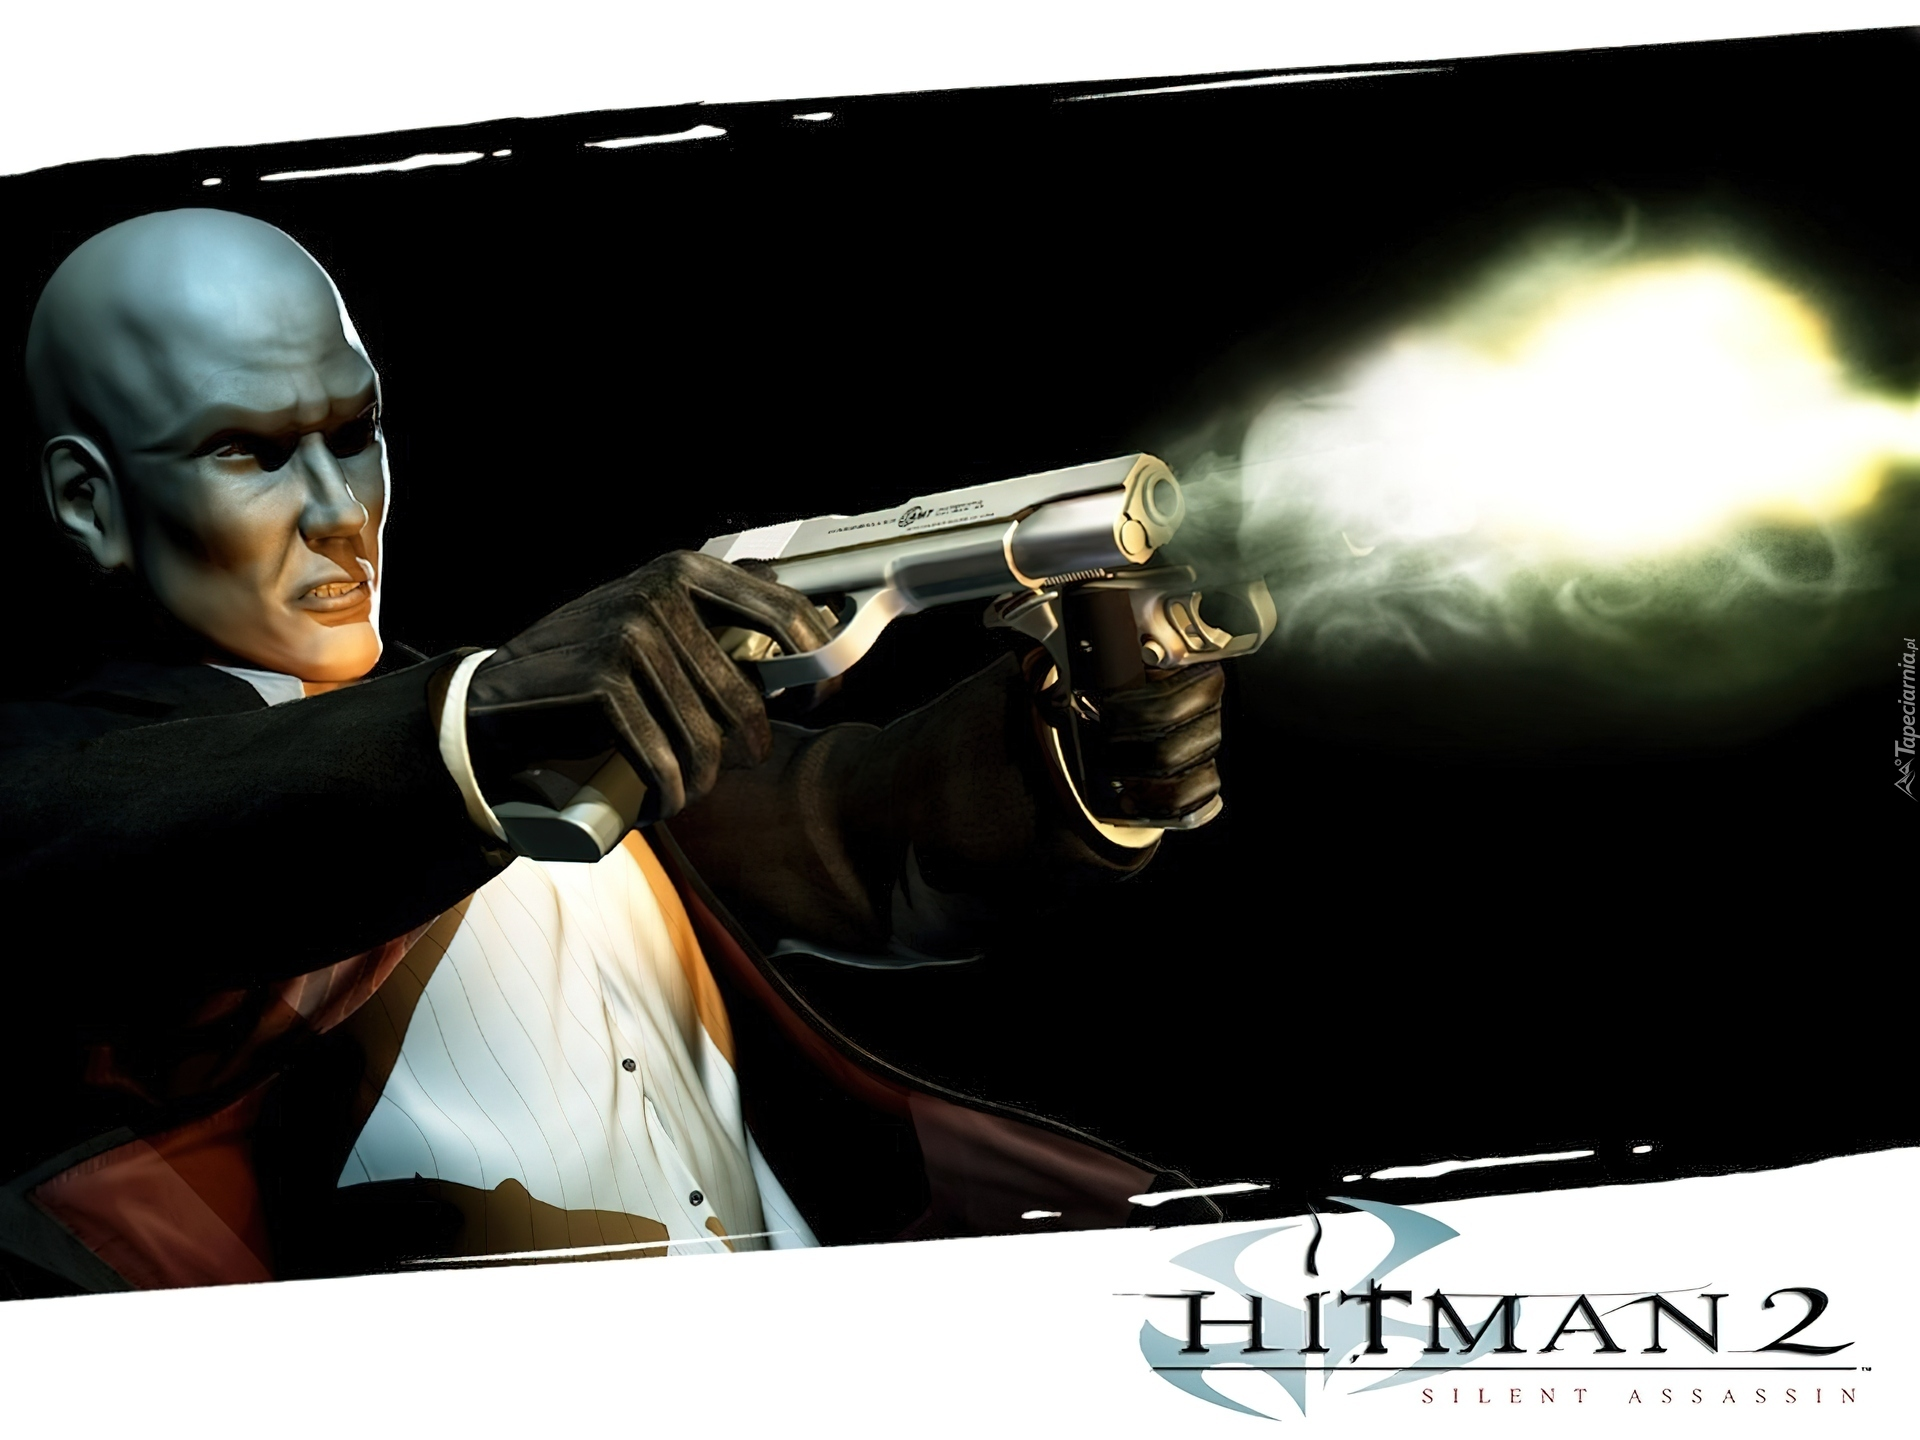 Hitman Silent Assassin, Hitman